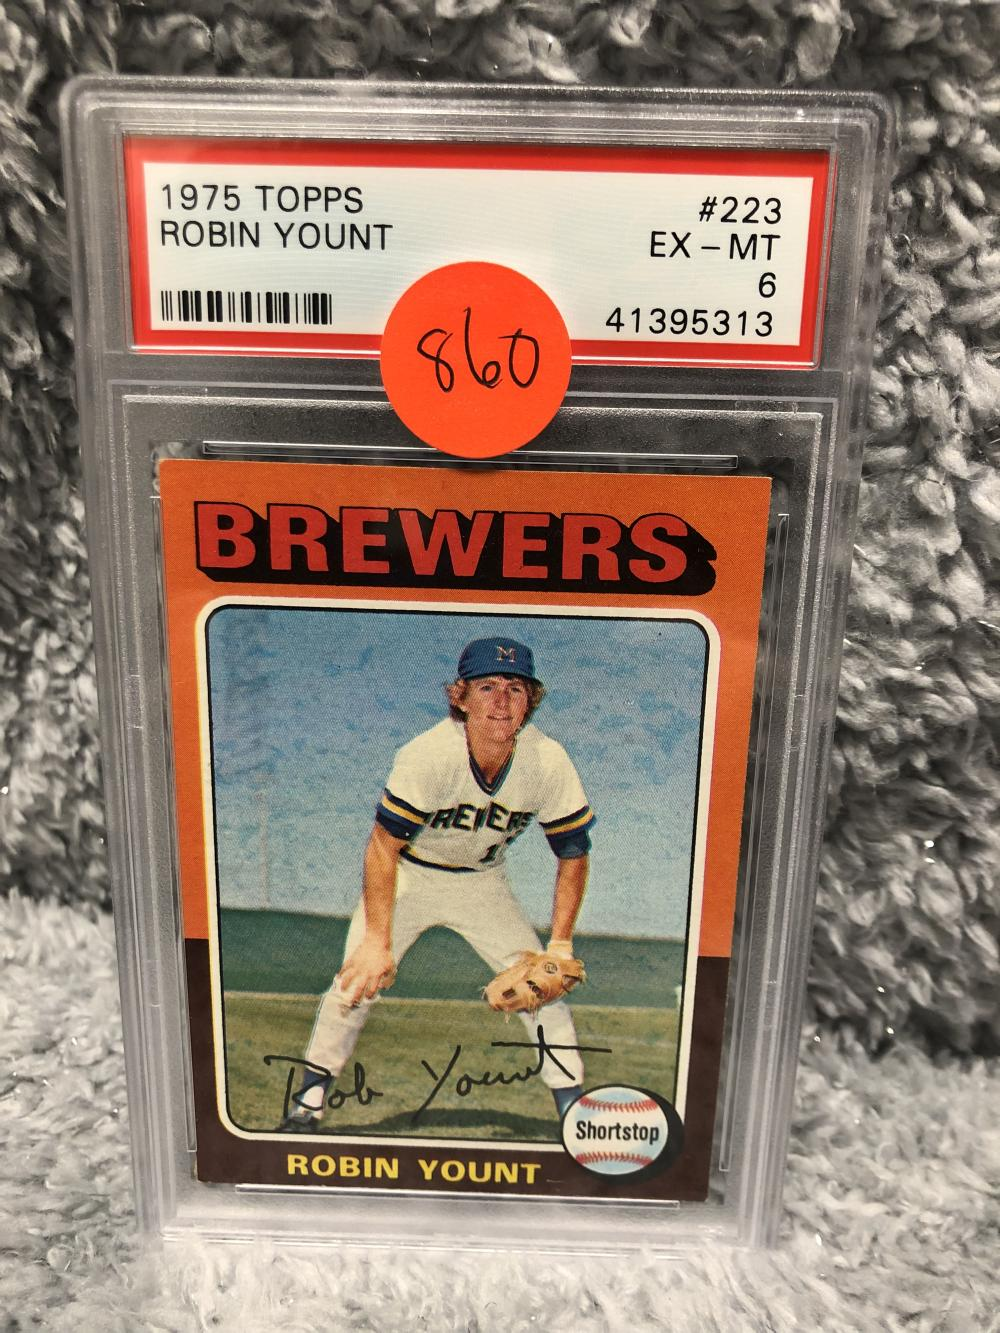 1975 Topps Robin Yount Rookie Card Psa 6 Exmt